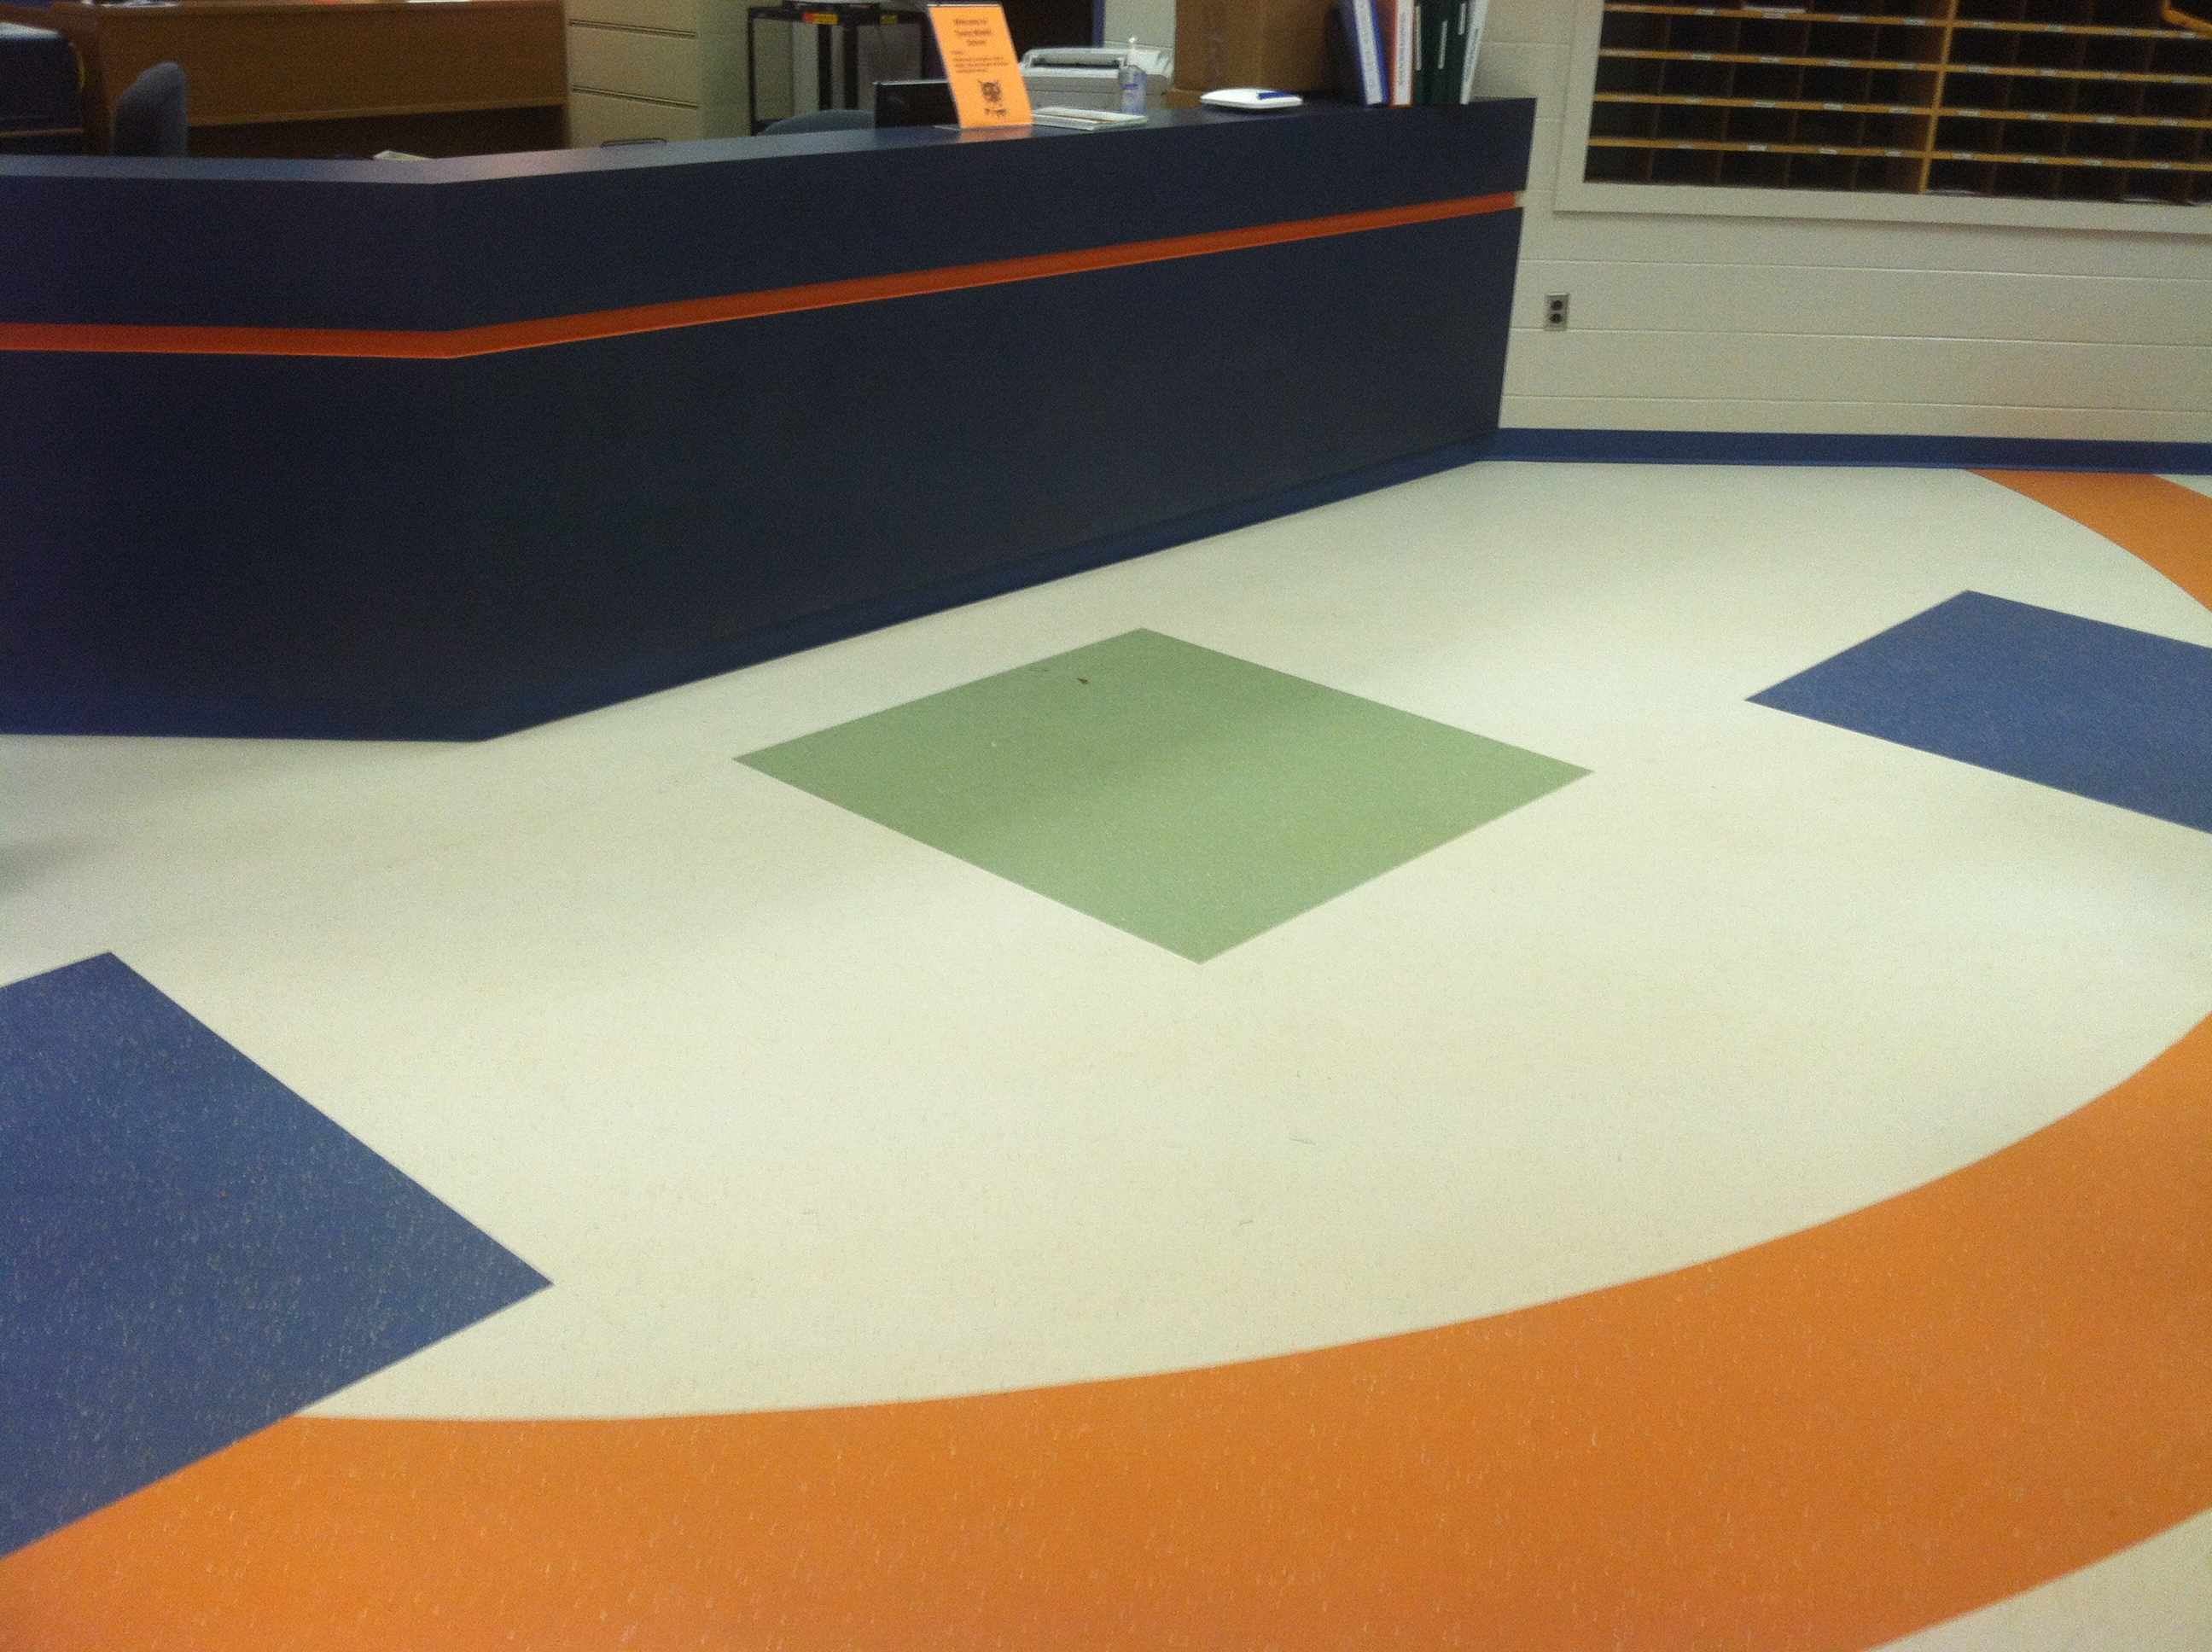 Haywood floor covering inc gloucester virginia va for Floor covering